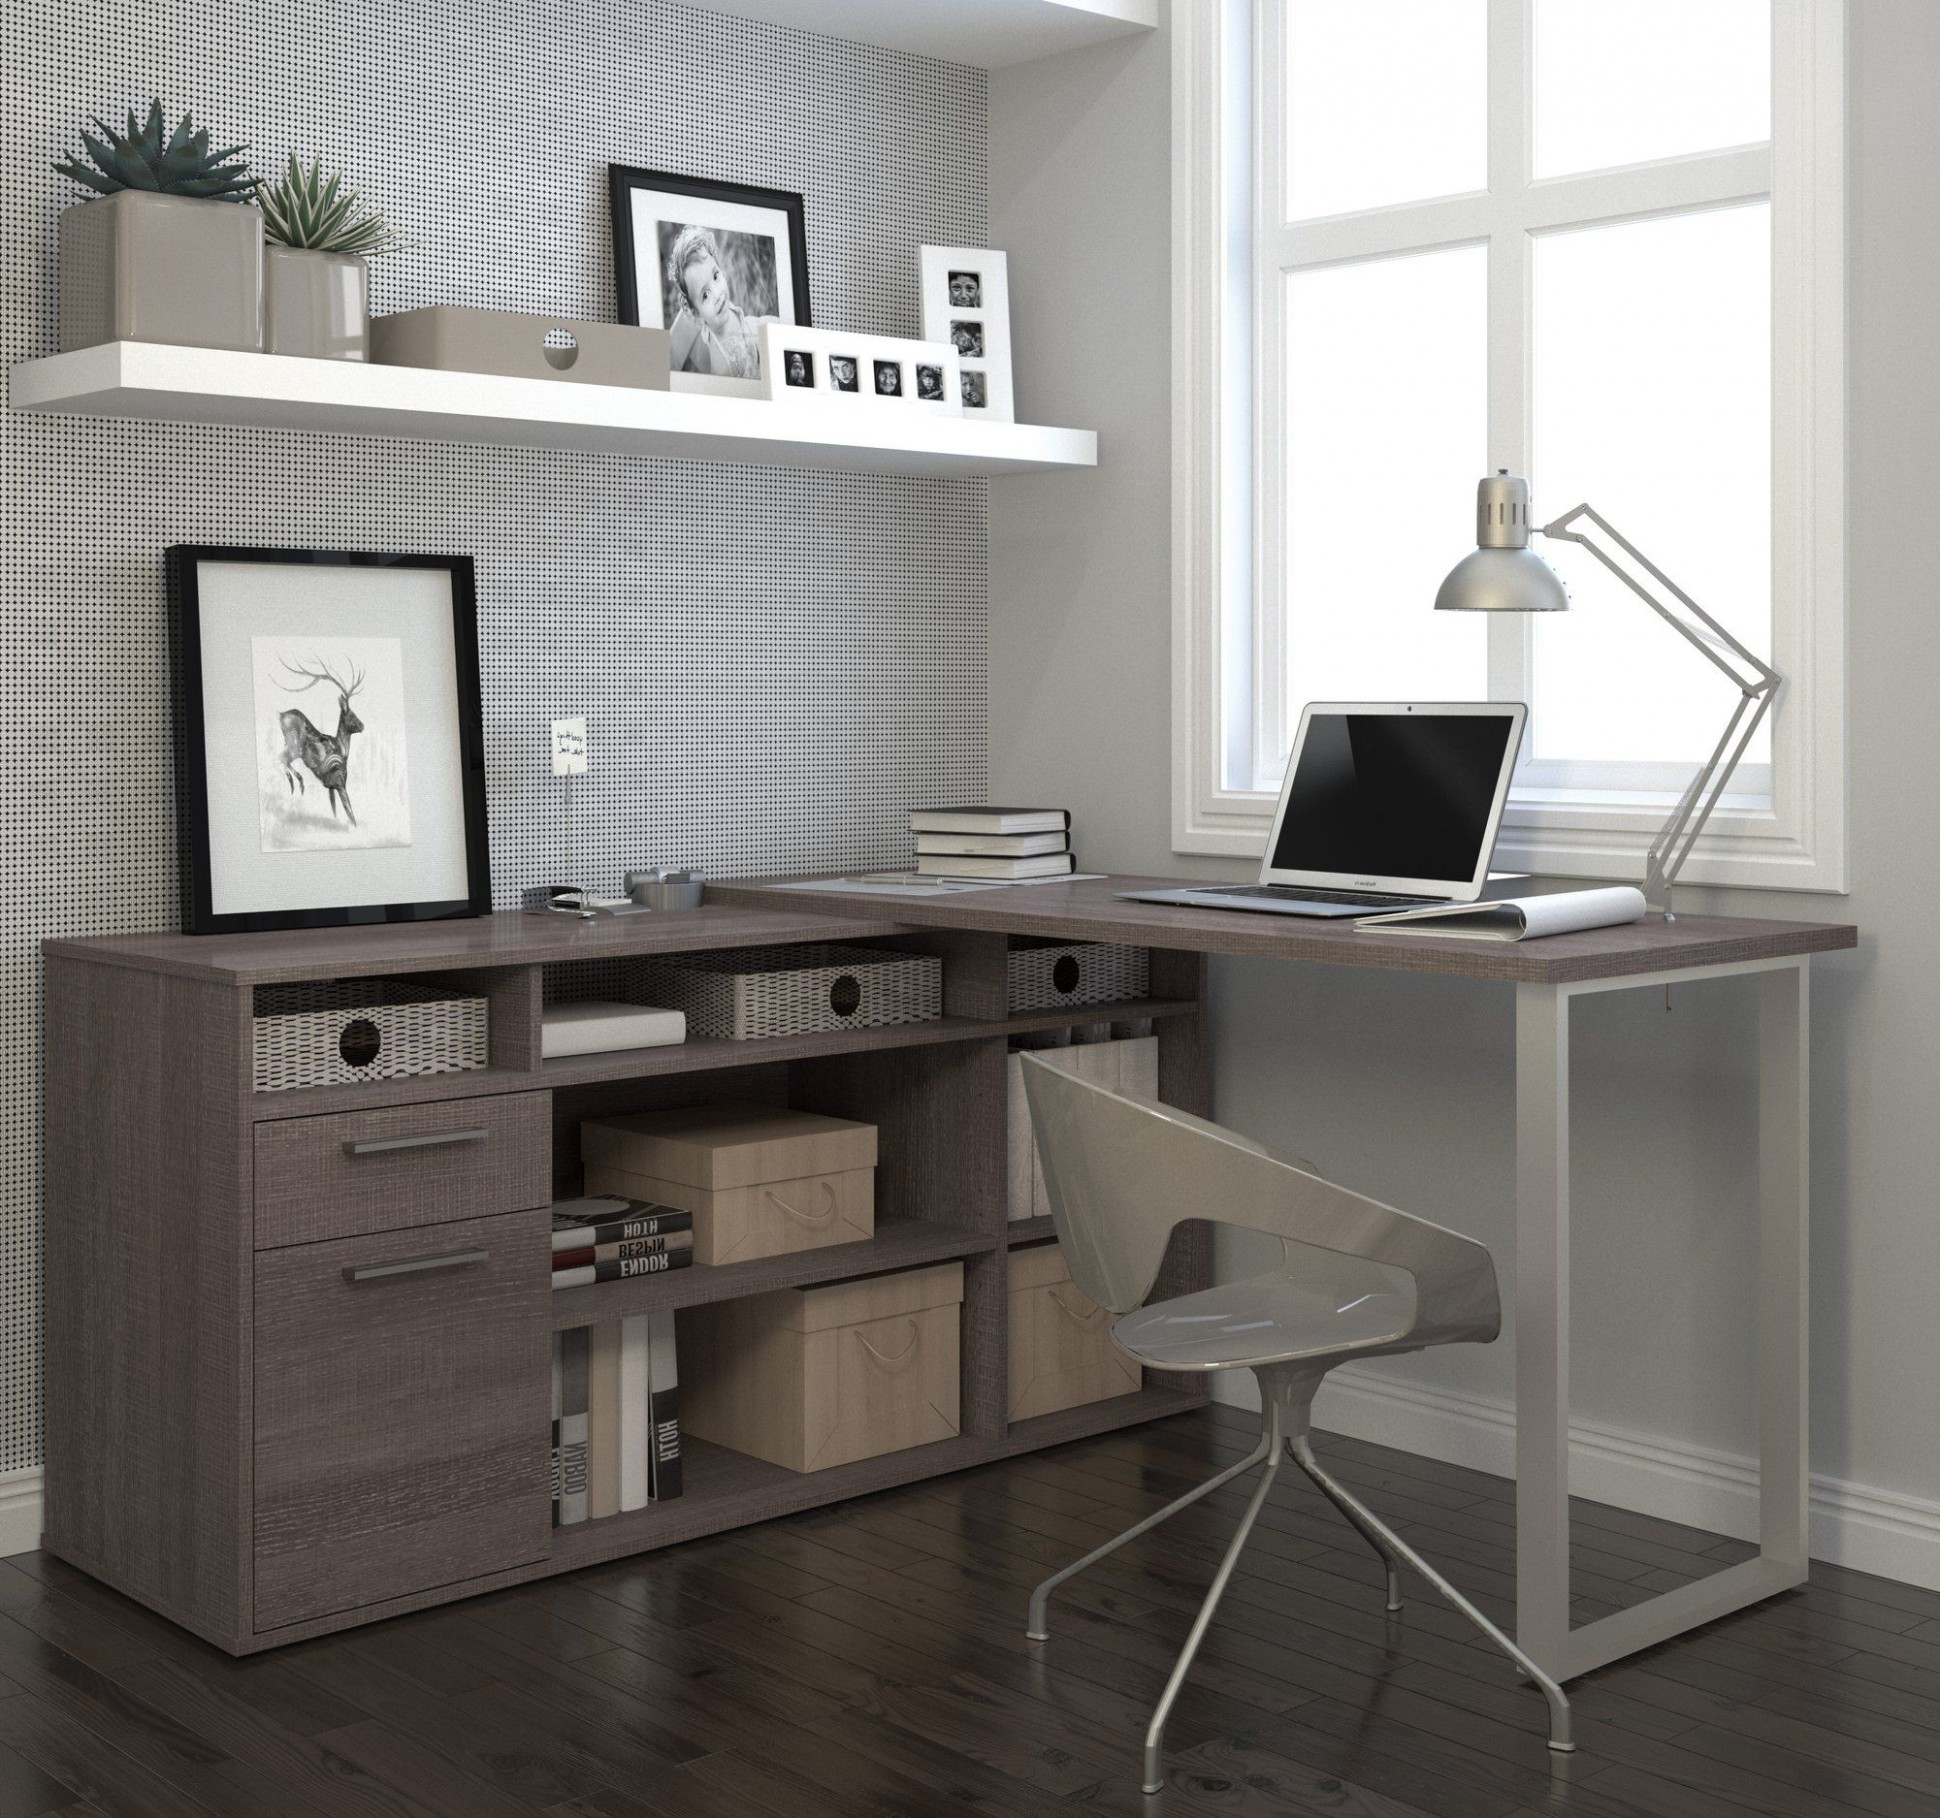 Modern L-shaped Desk with Integrated Storage in Bark Gray  Home  - Home Office Ideas With L Shaped Desk